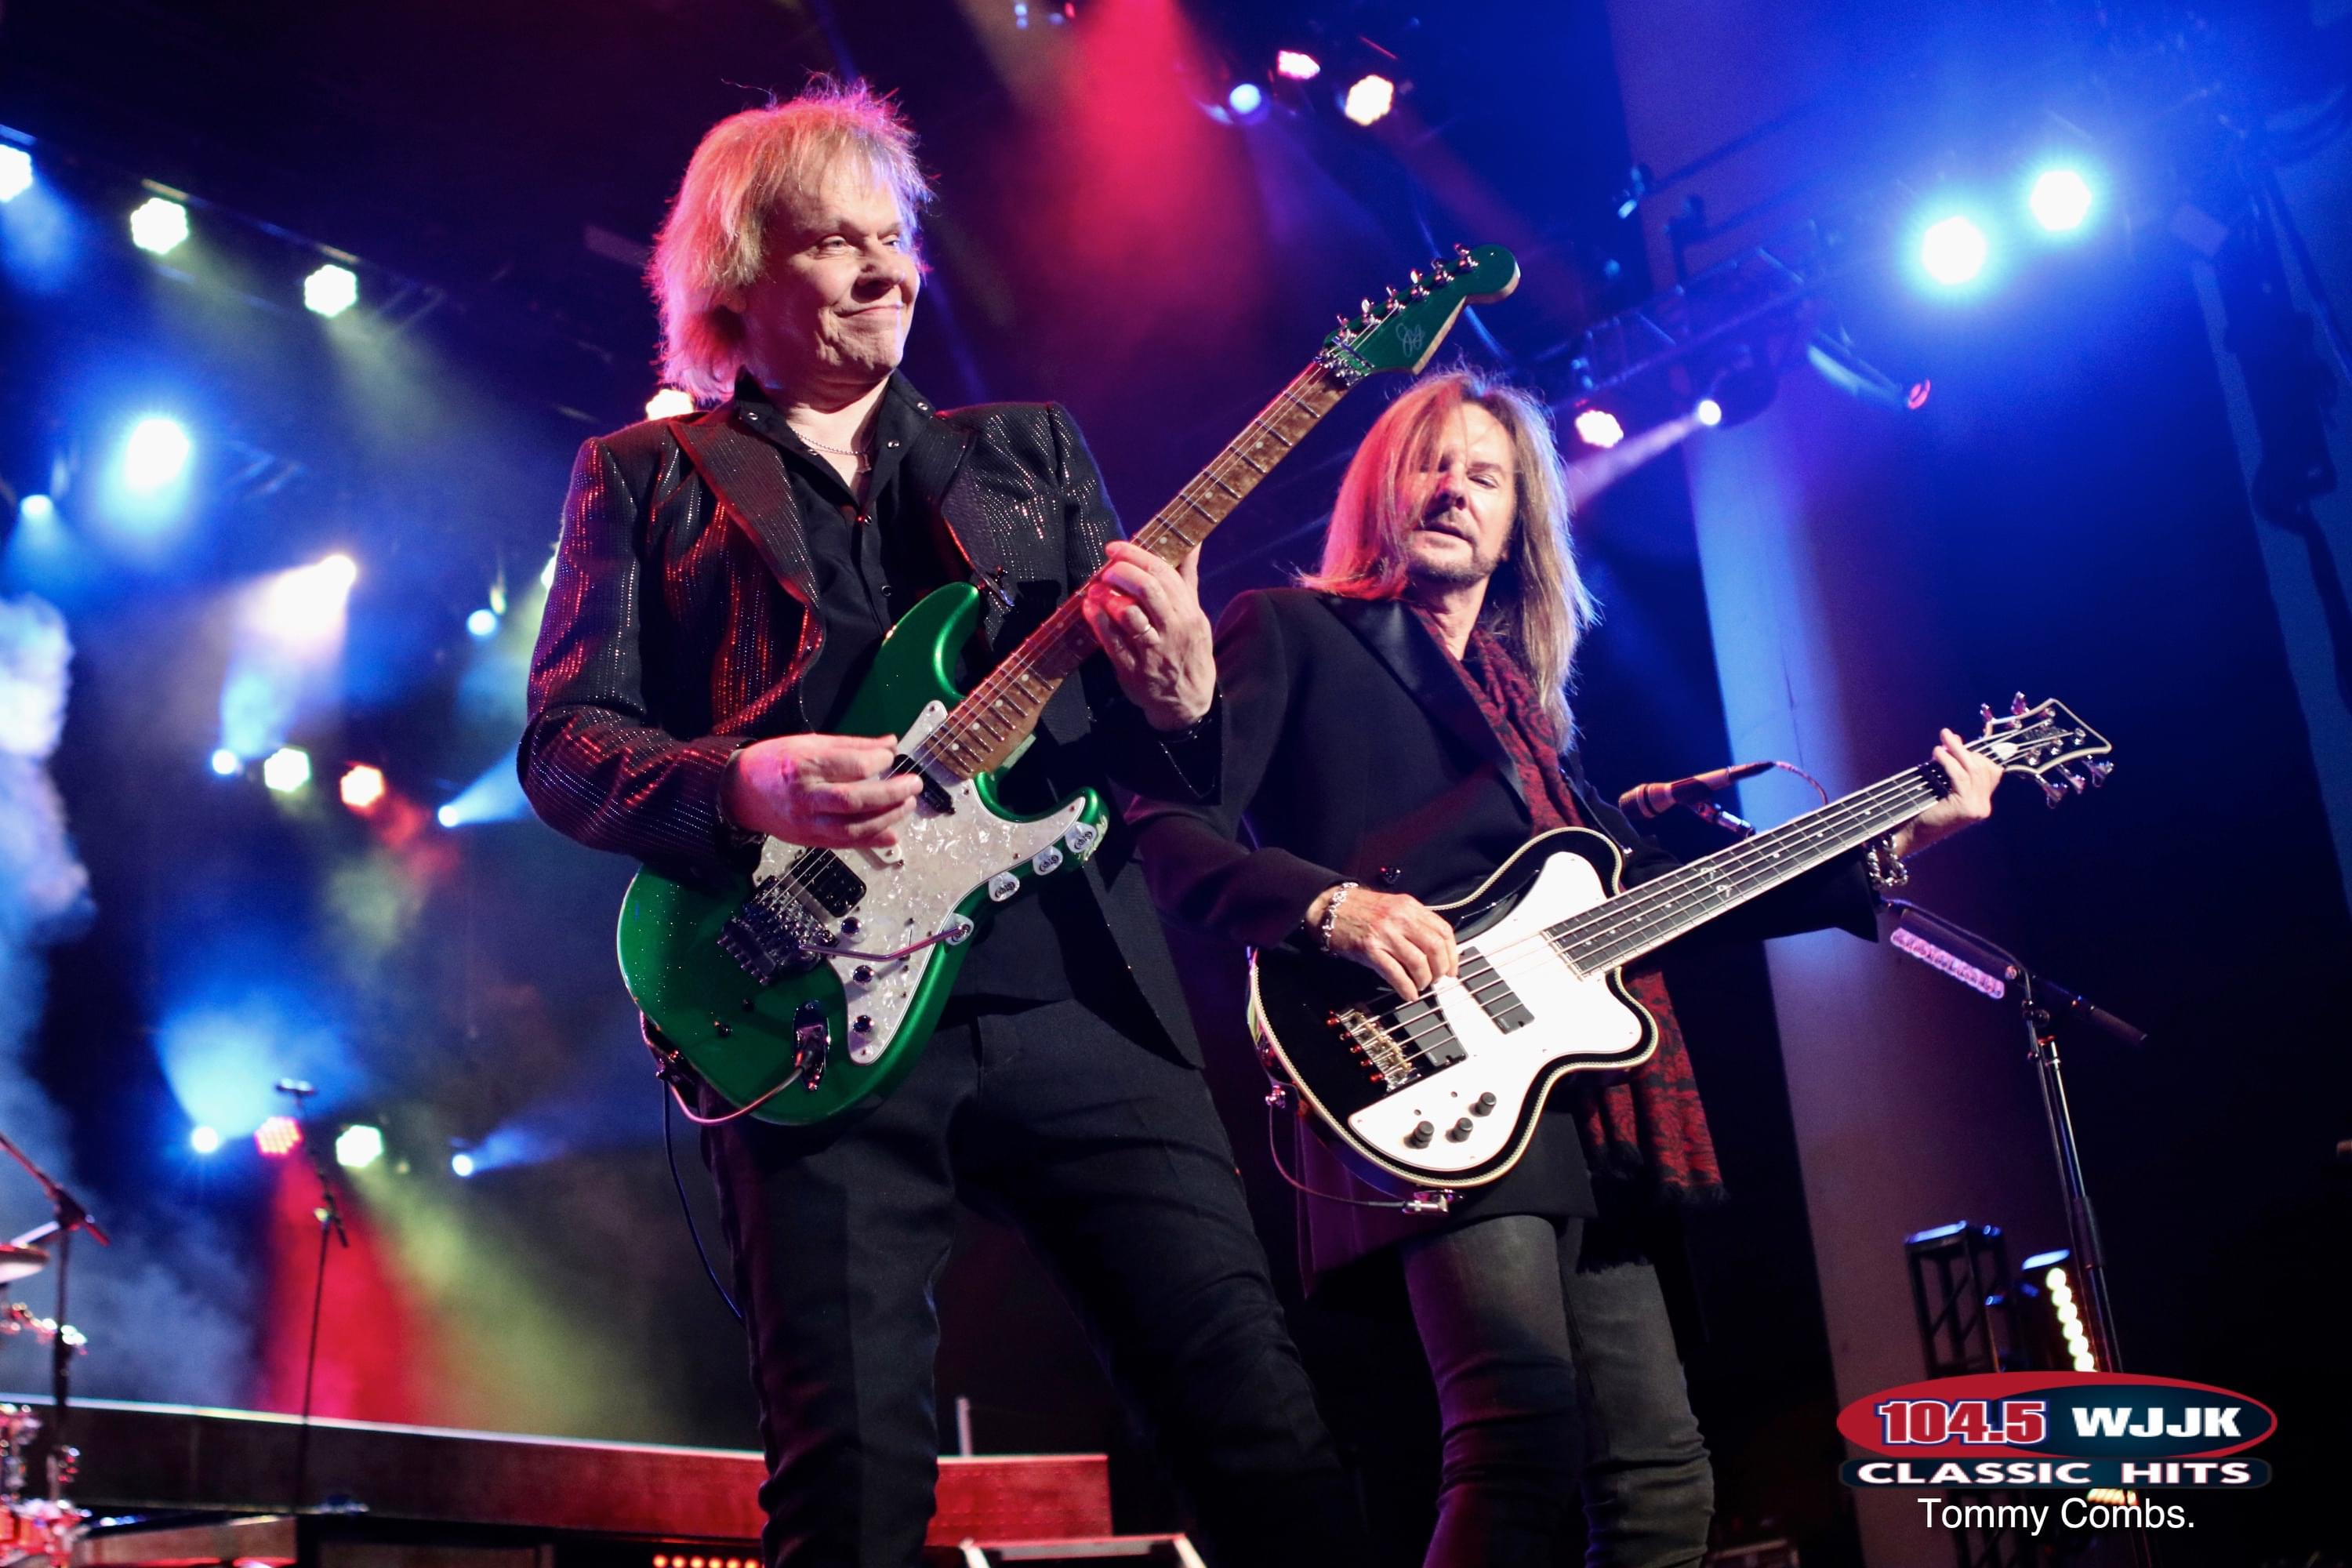 Check Out Great Photos Of Styx & Tesla From Last Night's Concert!